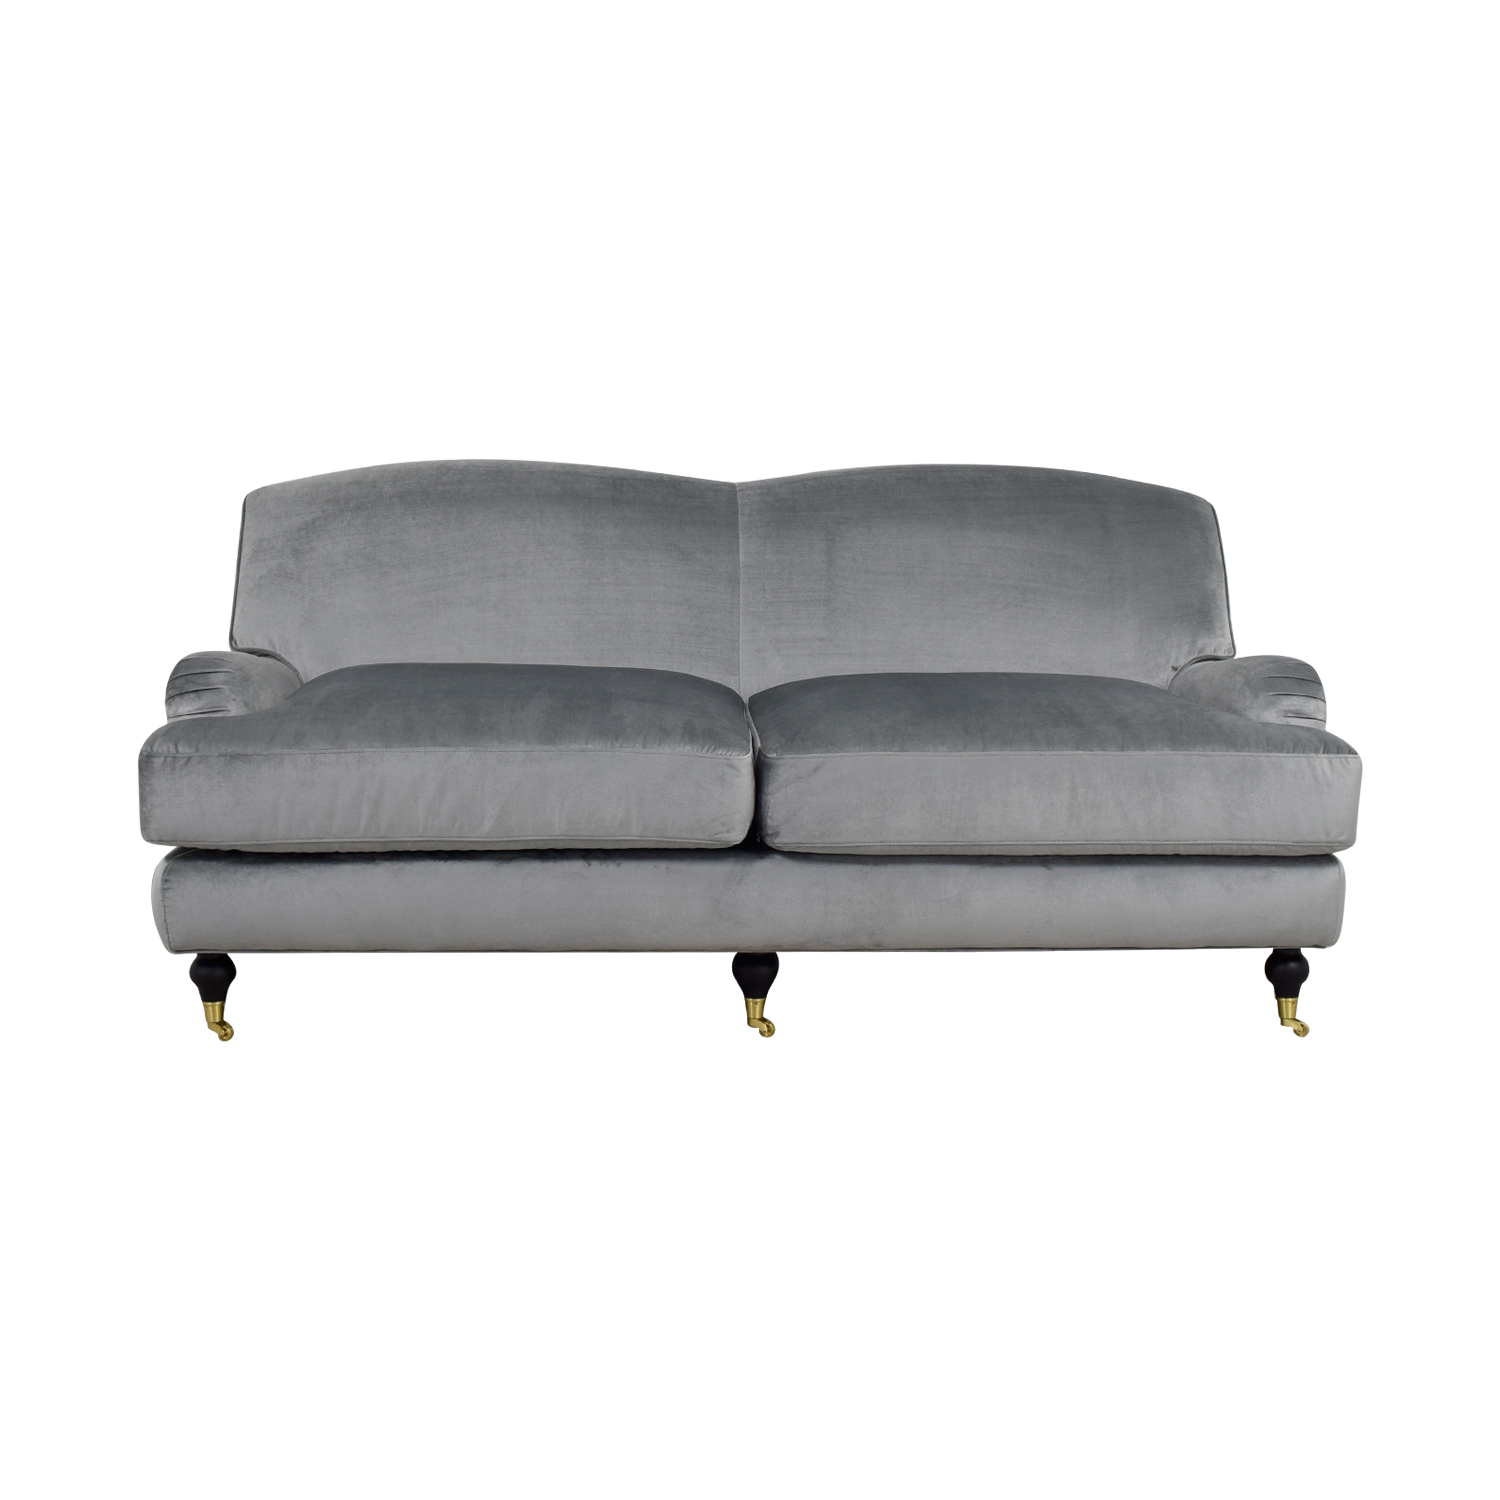 buy Interior Define Interior Define Rose Metallic Silver Sofa online